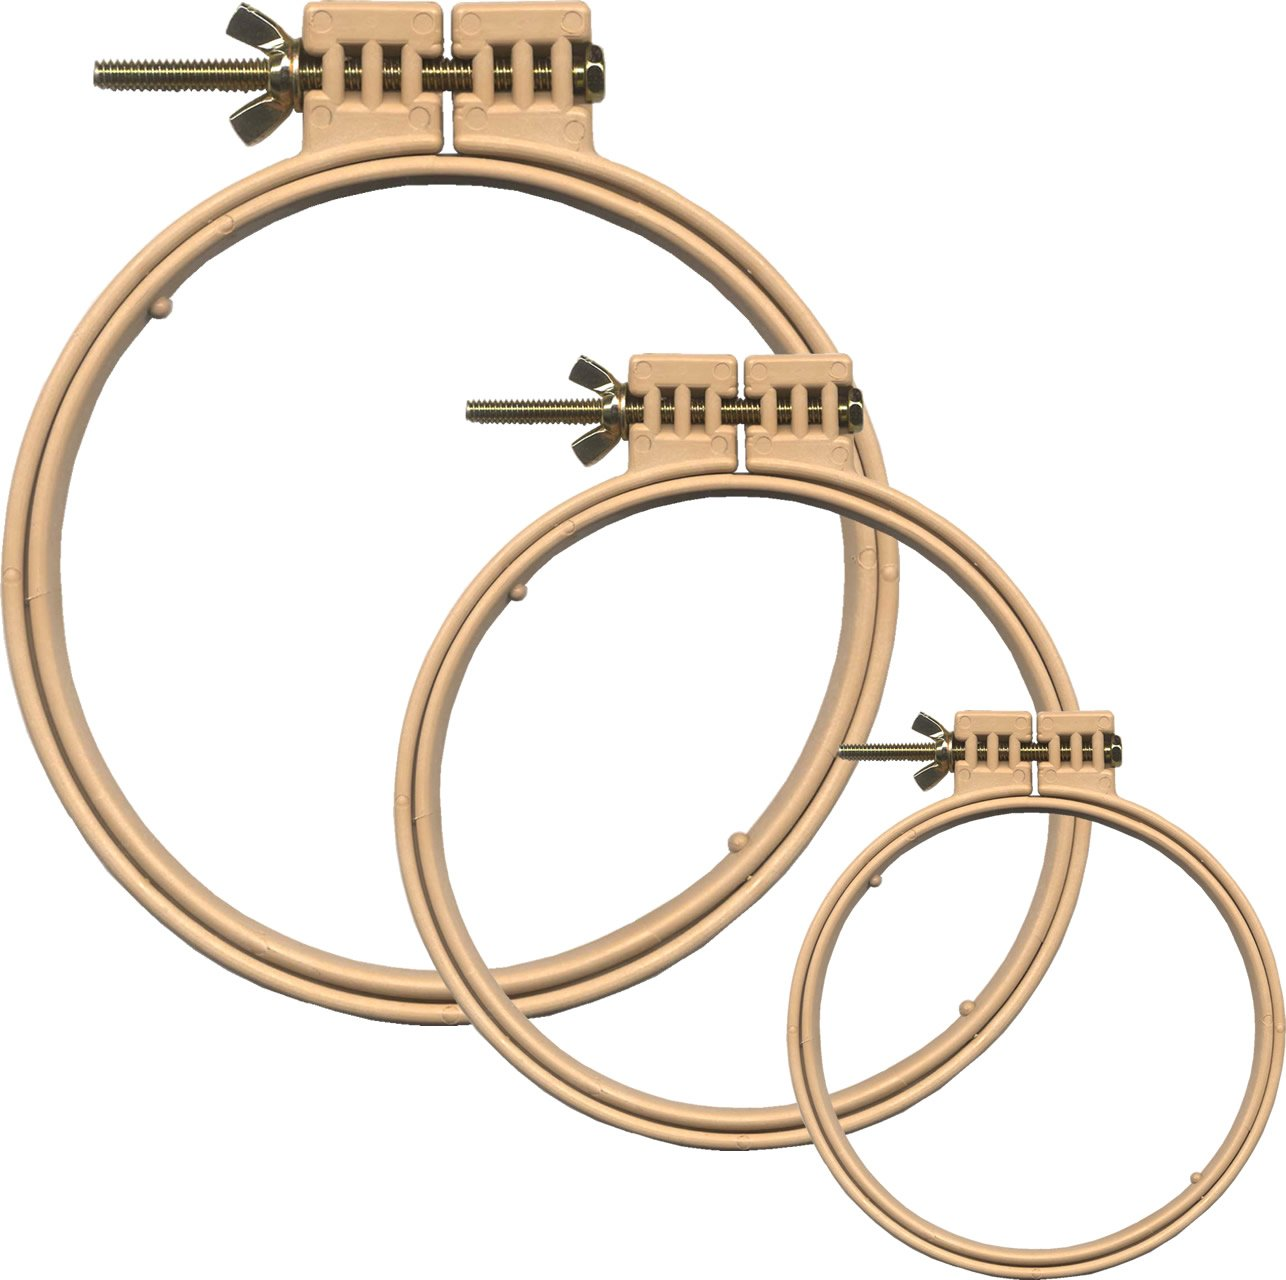 Morgan Quality Products No-Slip Embroidery Hoops Bundle Interlocking Tongue and Groove Design 9 and 5